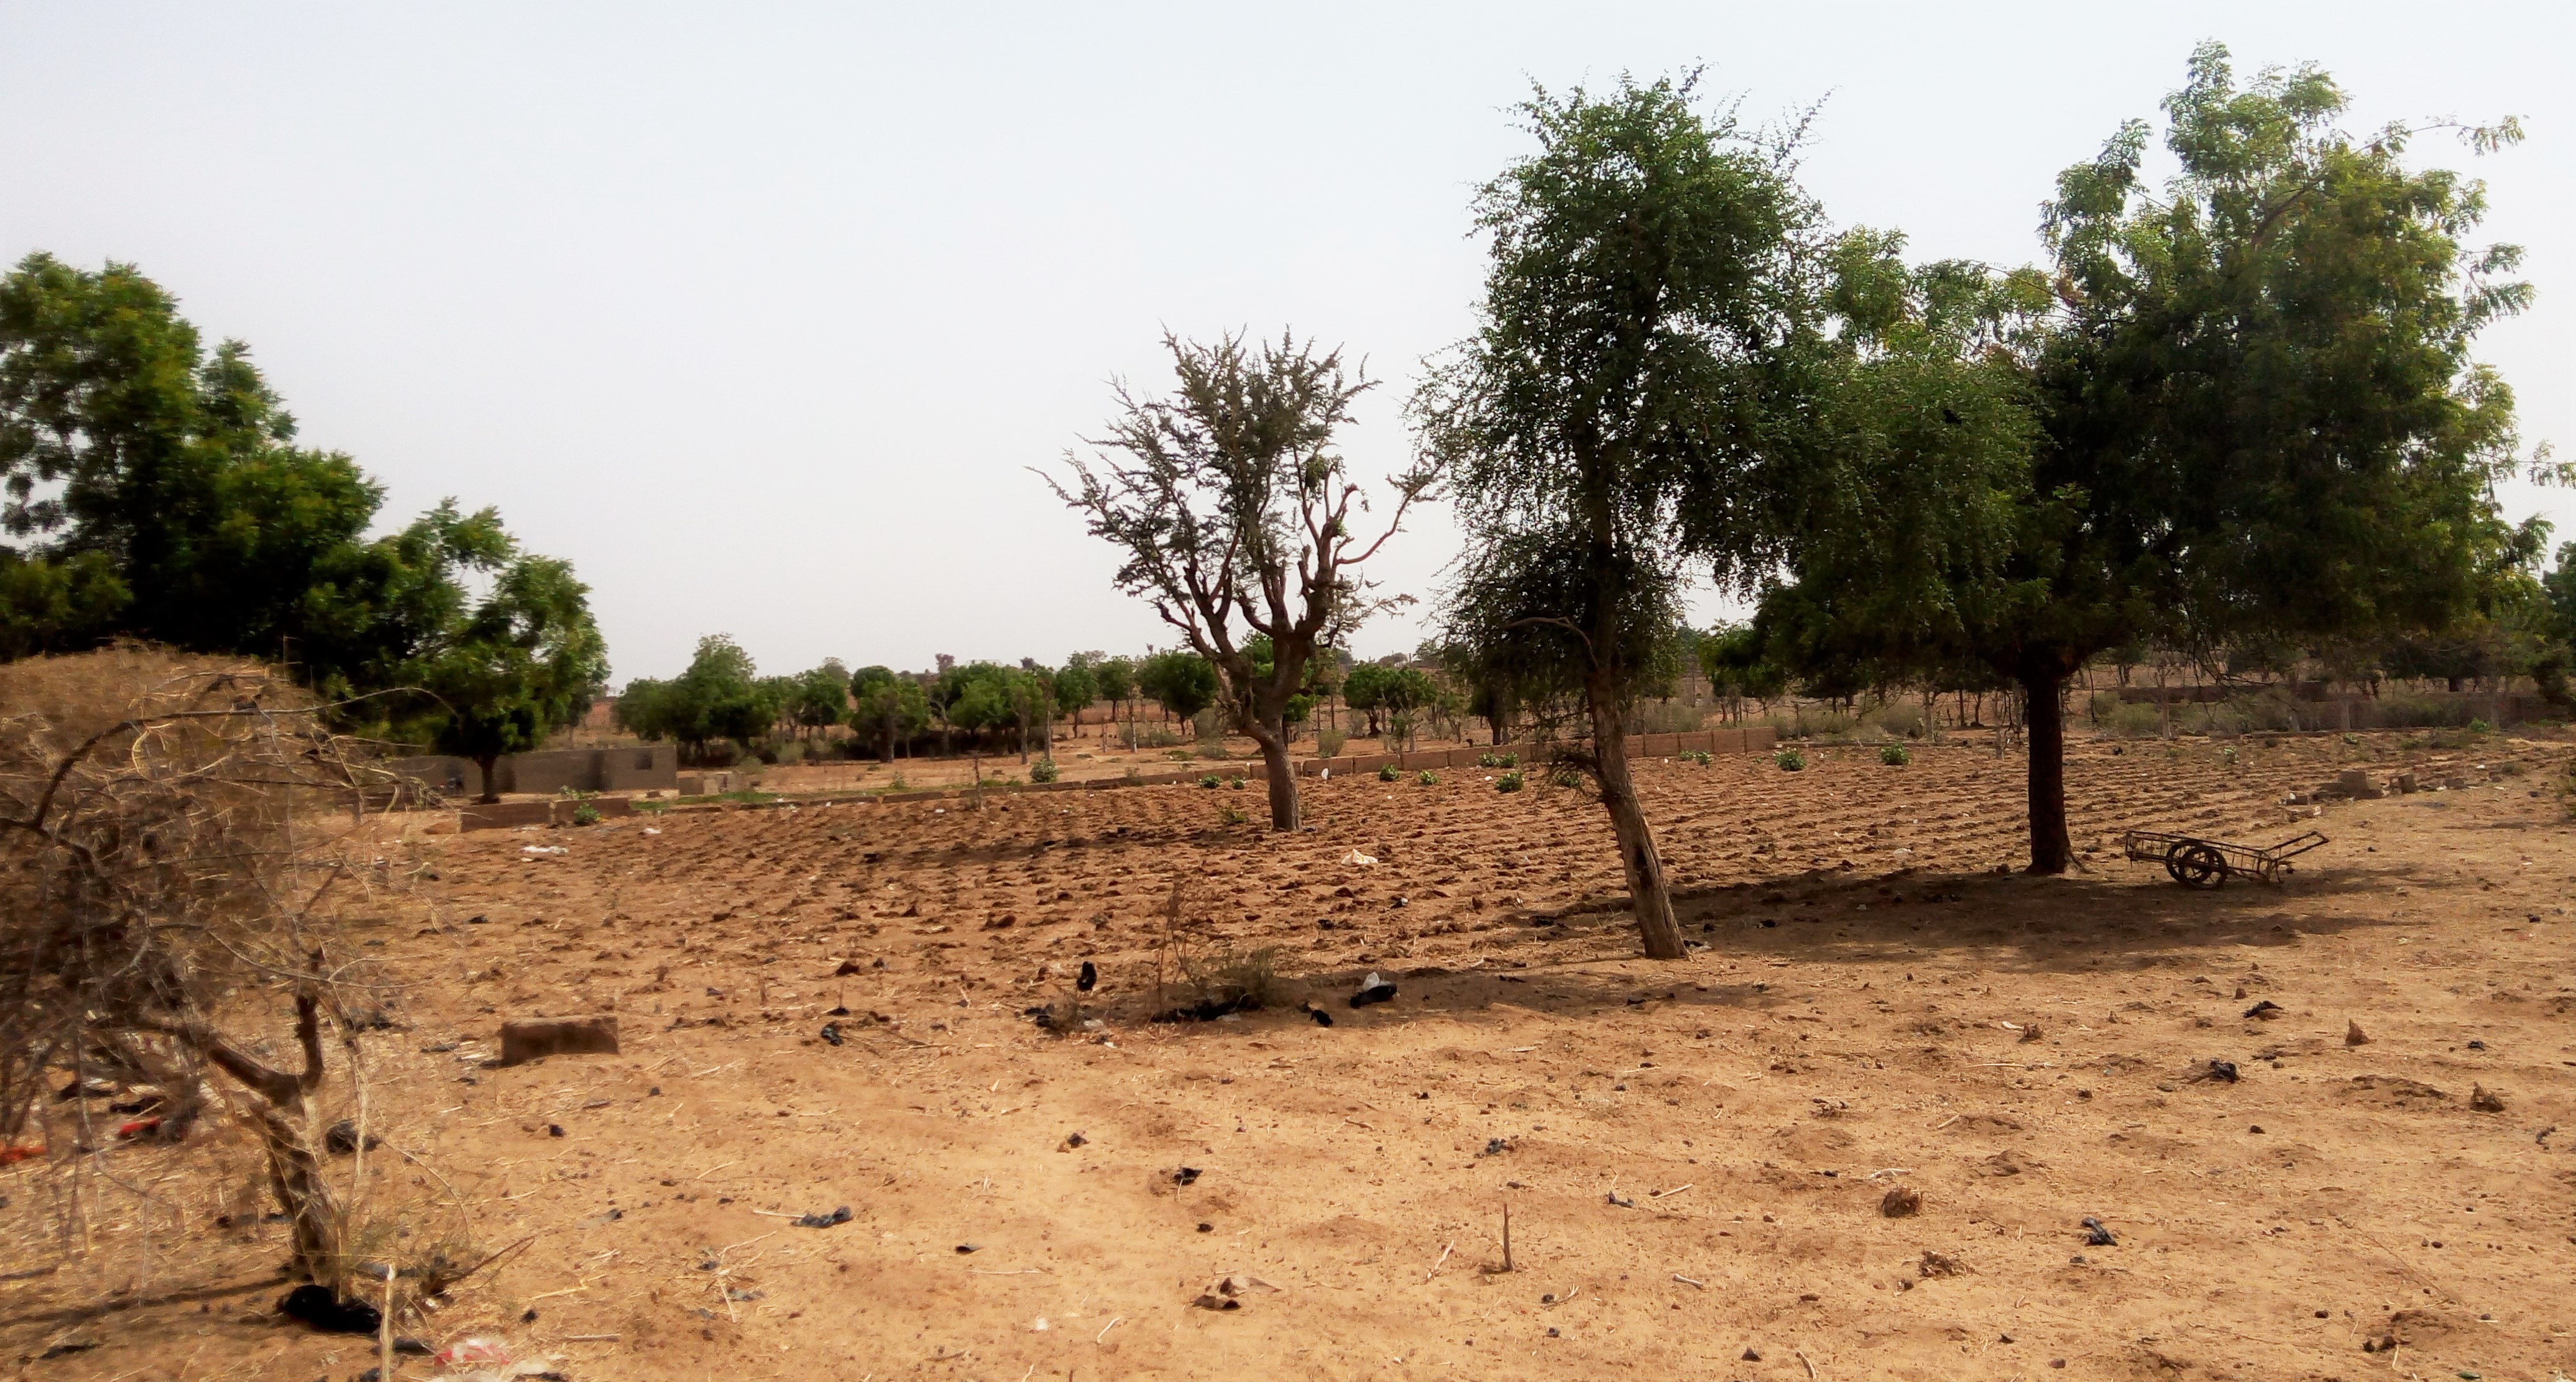 how does deforestation lead to desertification